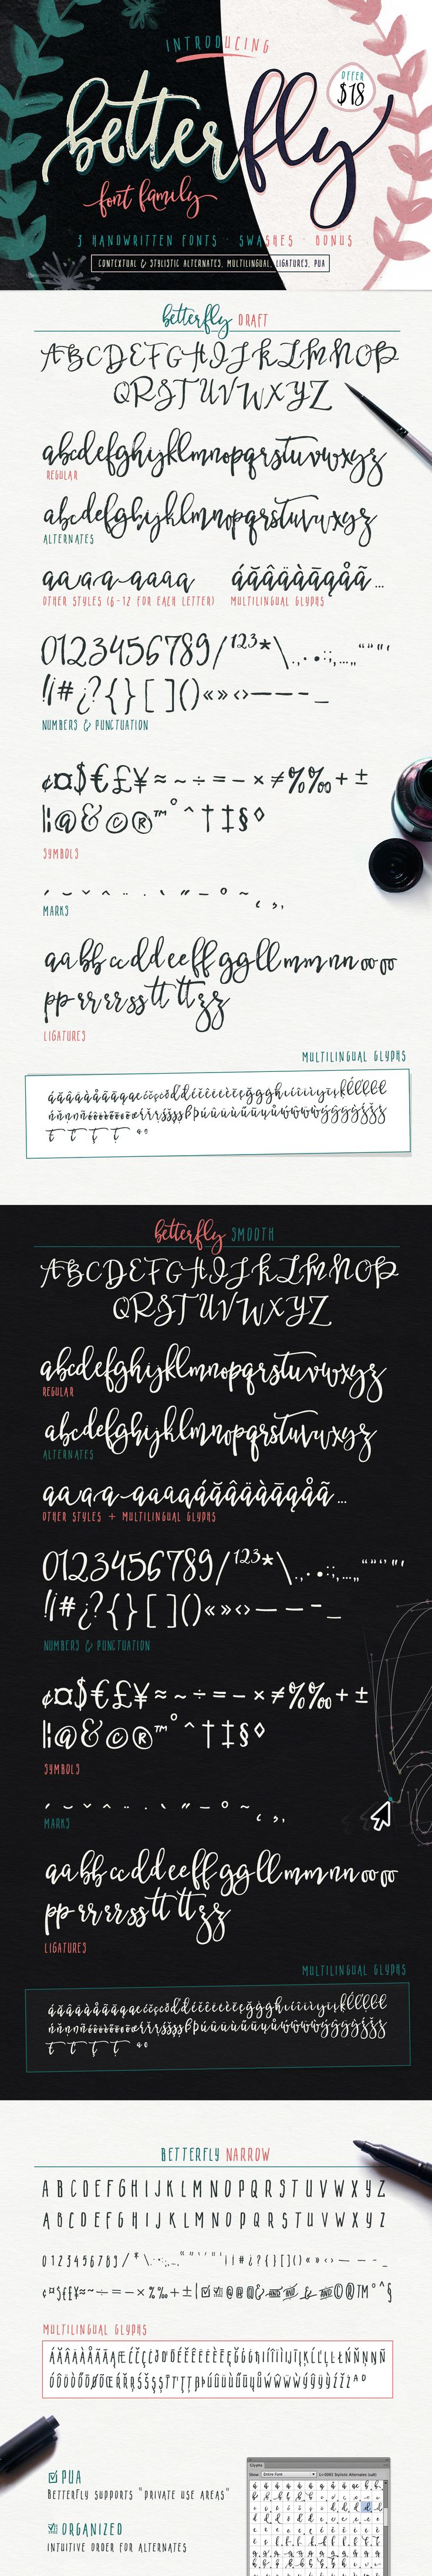 BetterFly - 3 modern fonts & swashes by Blessed Print on @creativemarket